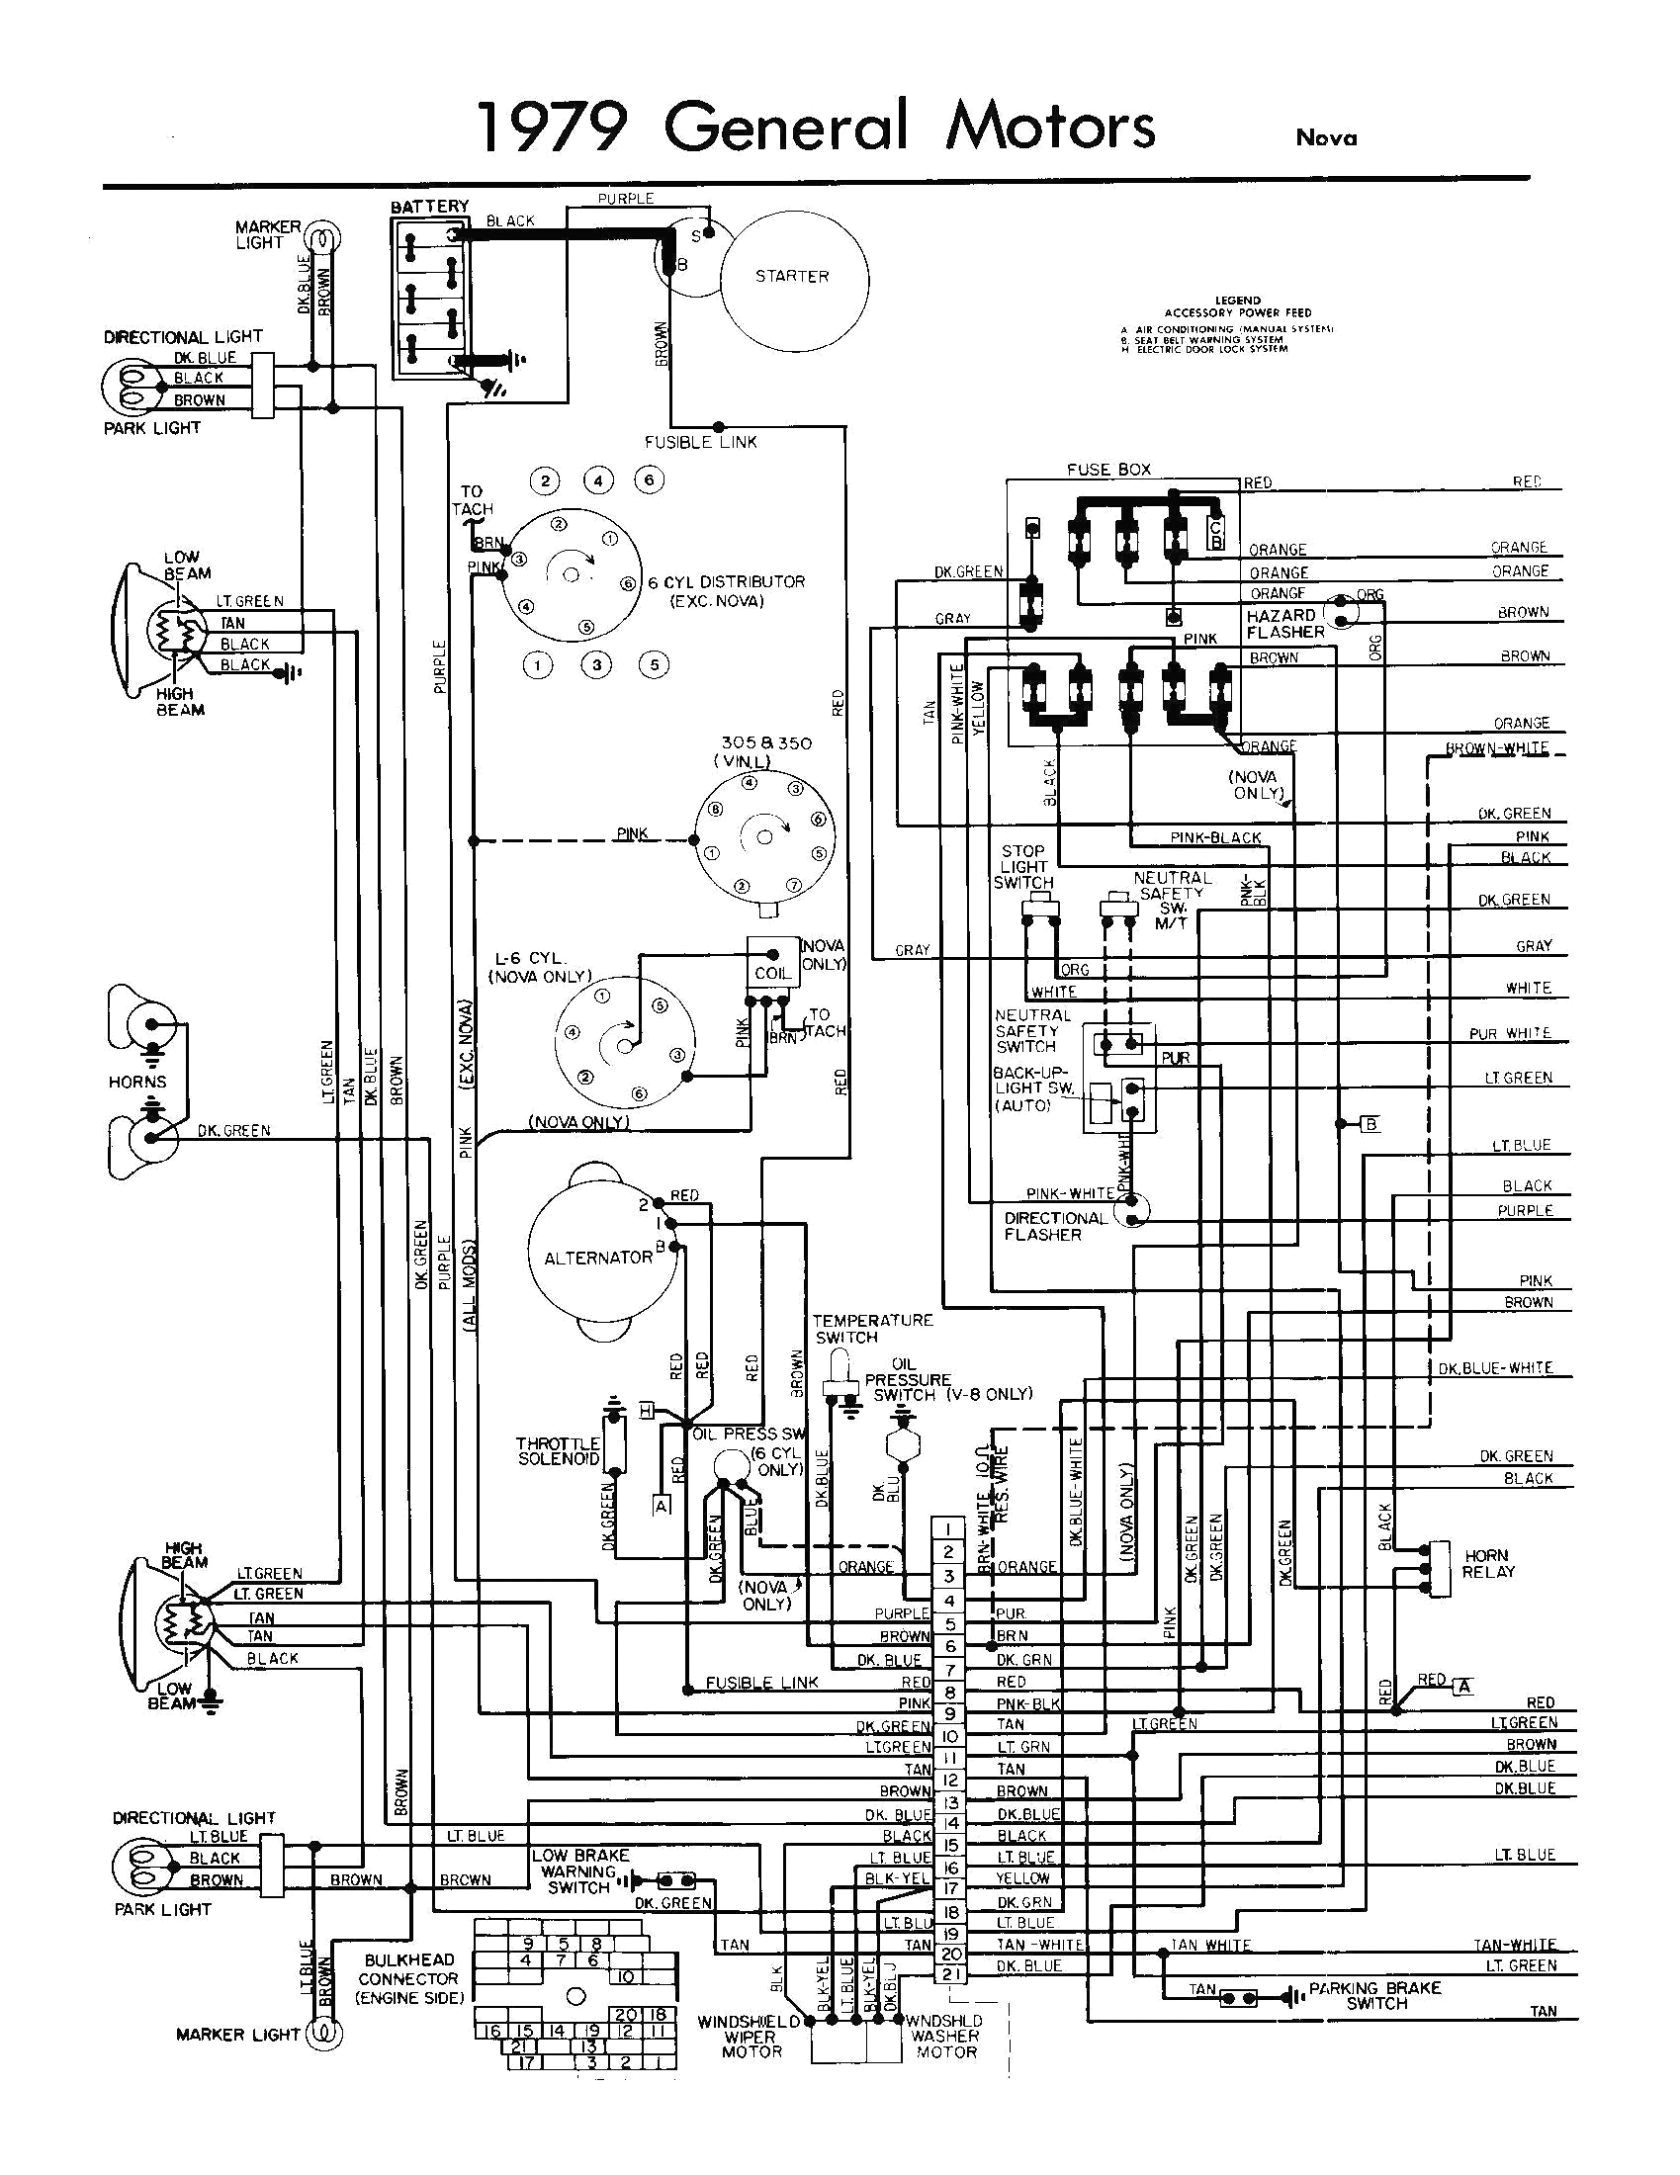 1974 Chevy Pickup Wiring Diagram Chevy P10 Wiring Wiring Diagrams Value